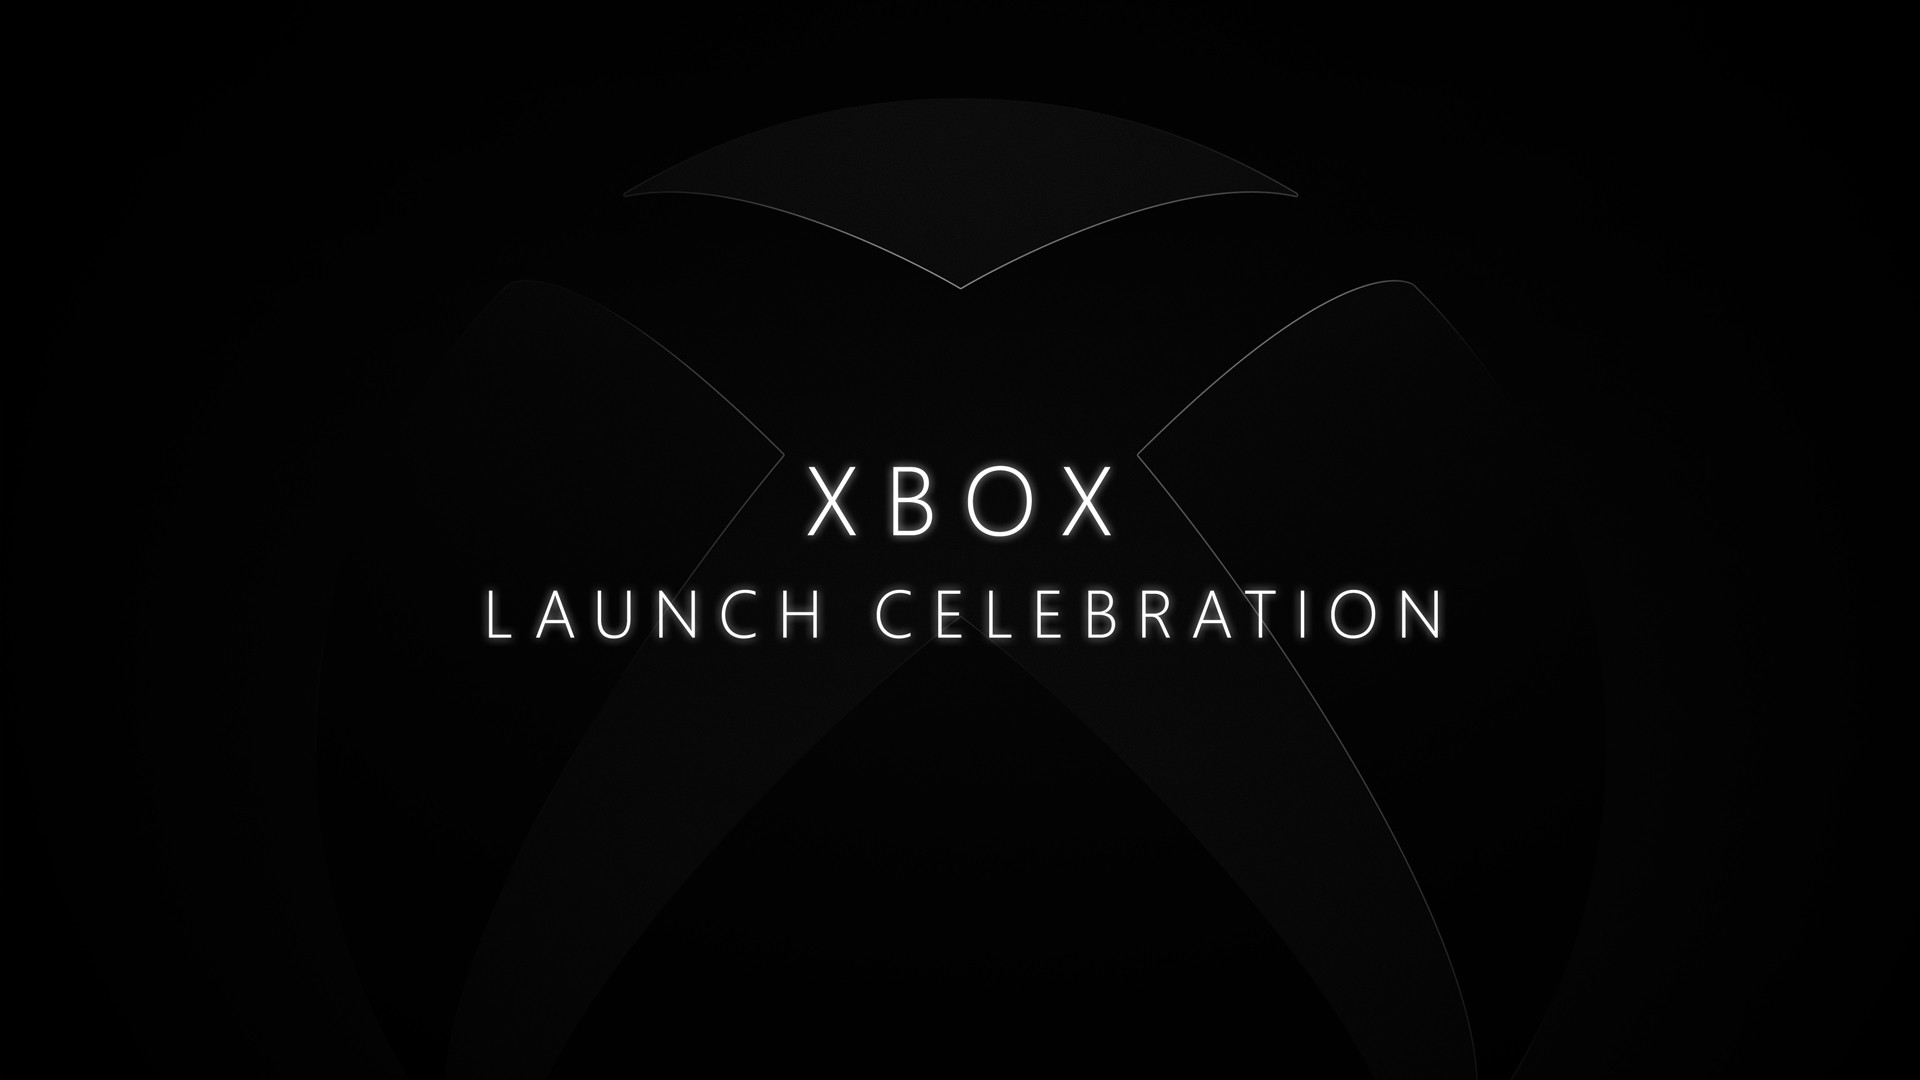 Xbox Launch Celebration